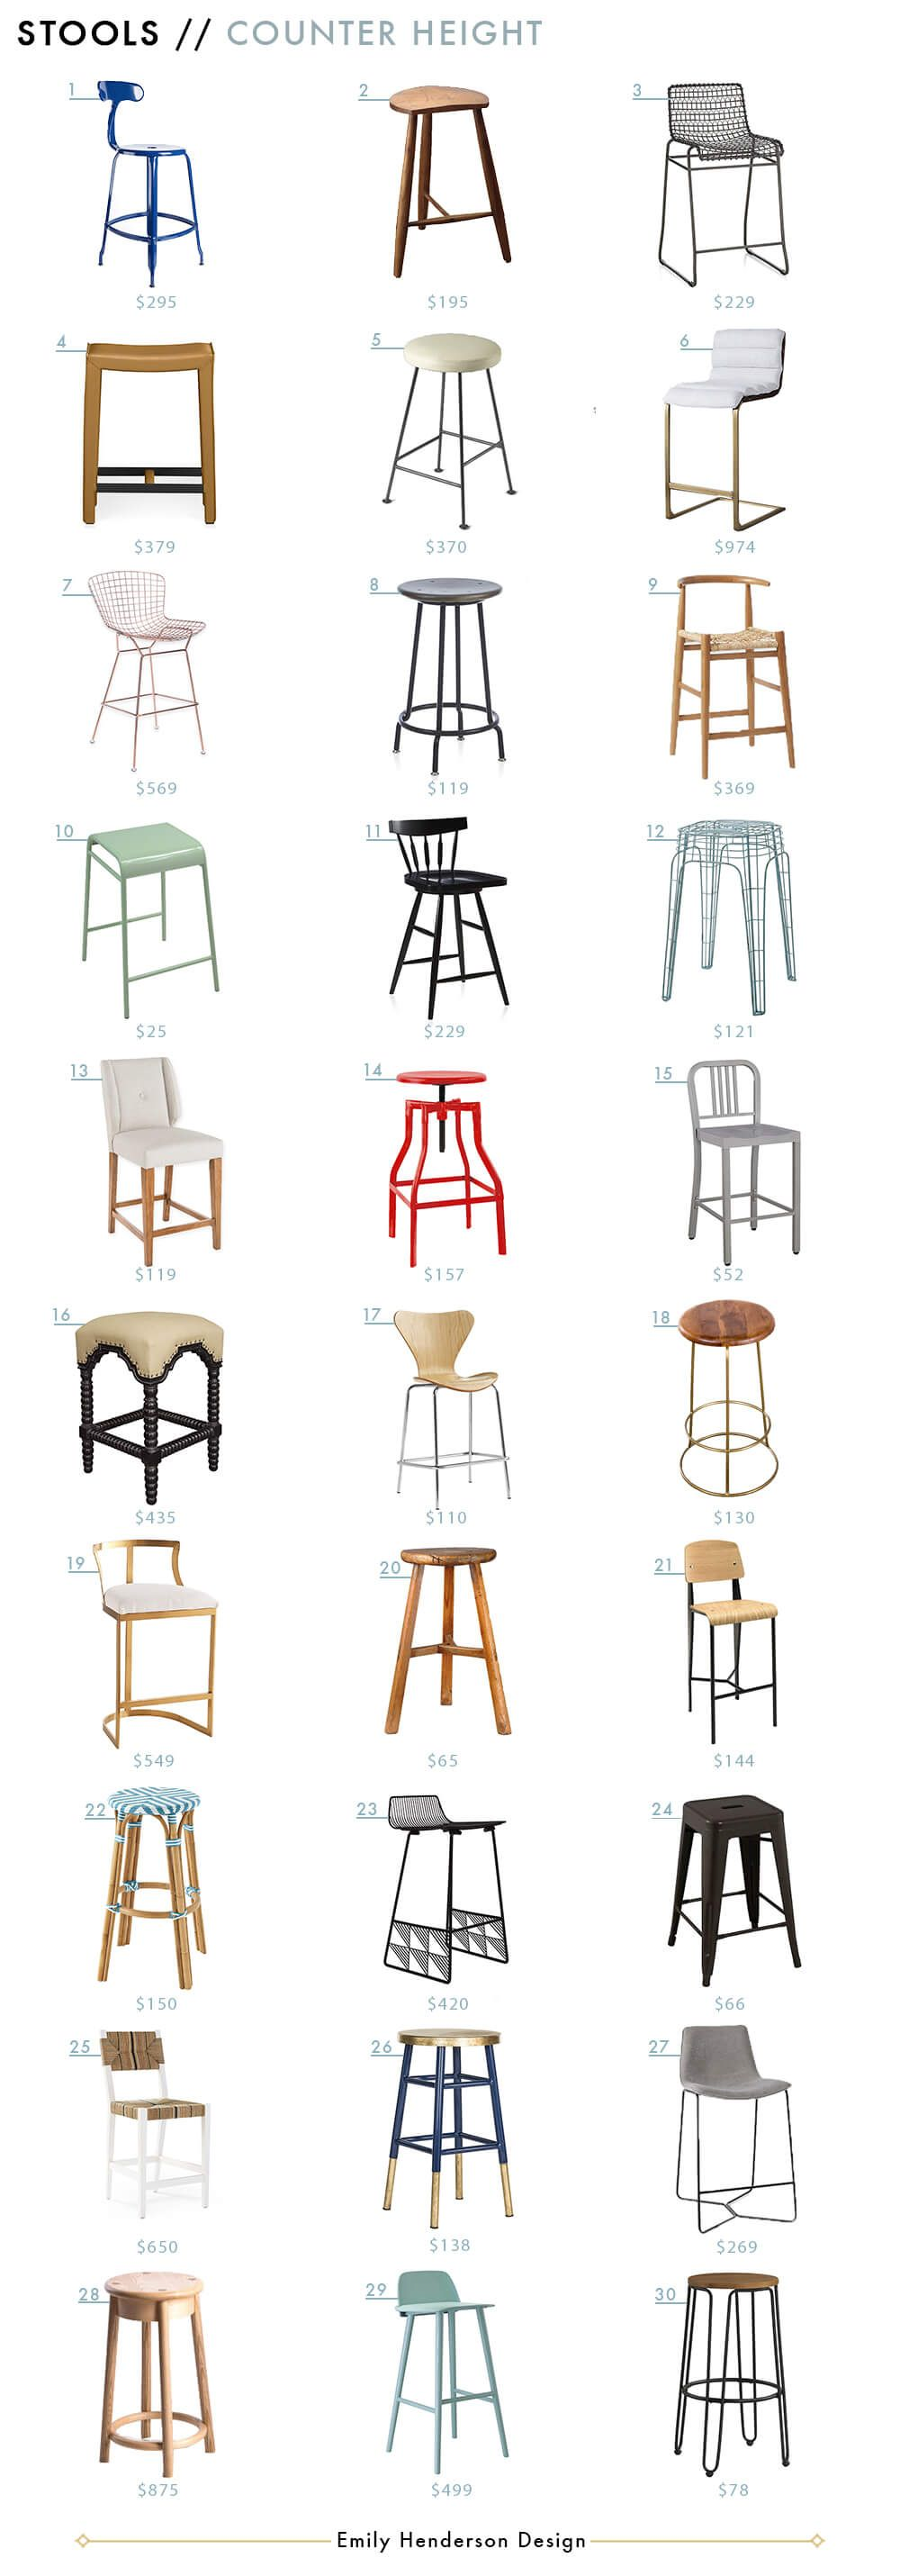 the ultimate counter and bar stool roundup - counter height | ehd